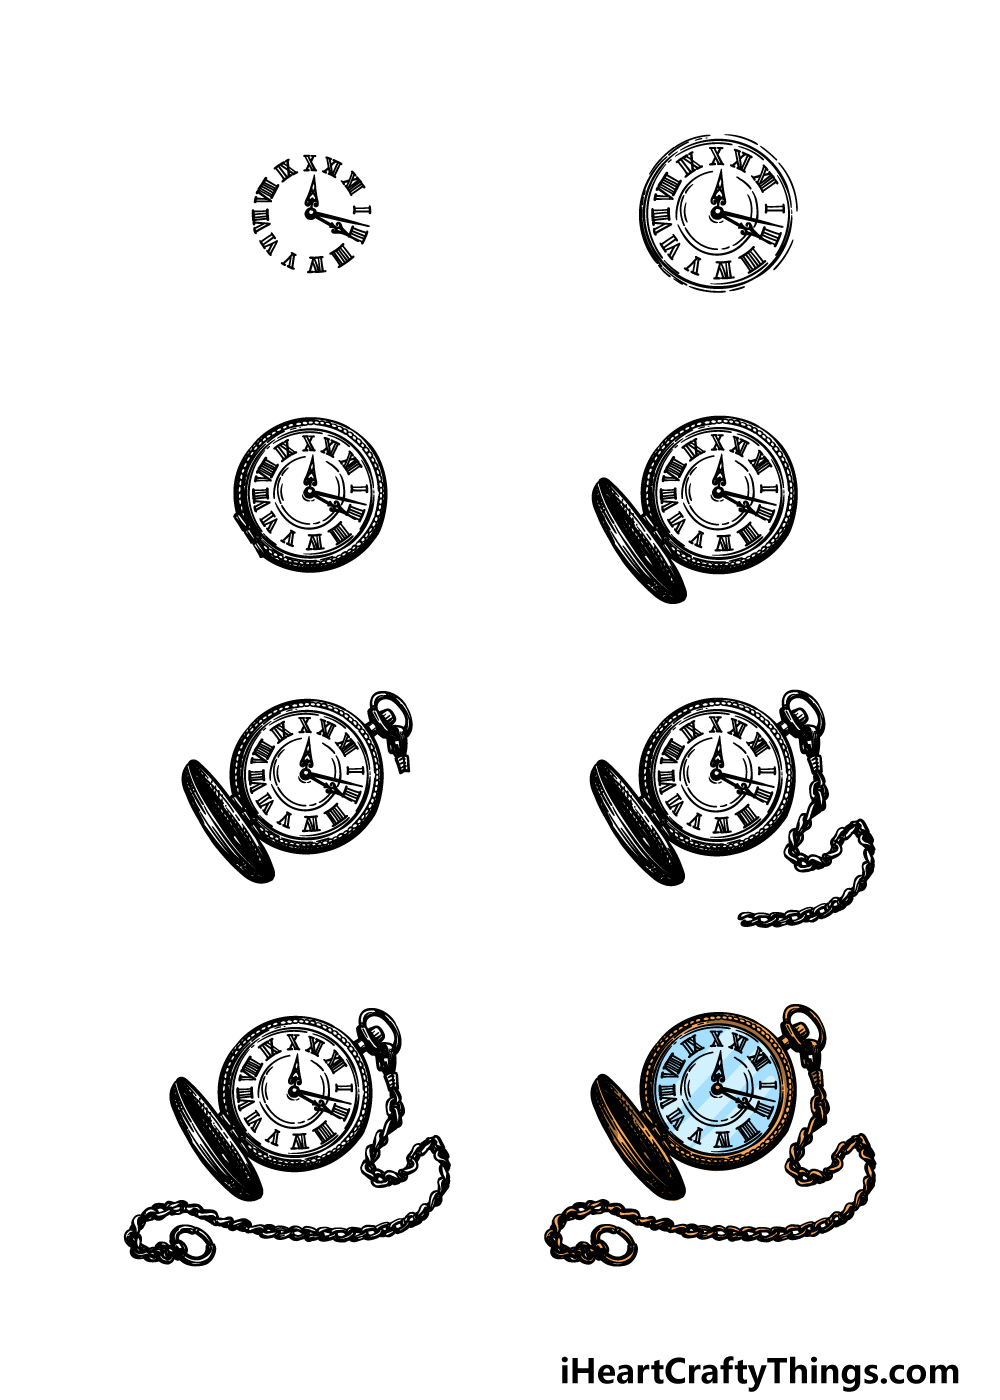 how to draw a pocket watch in 8 steps